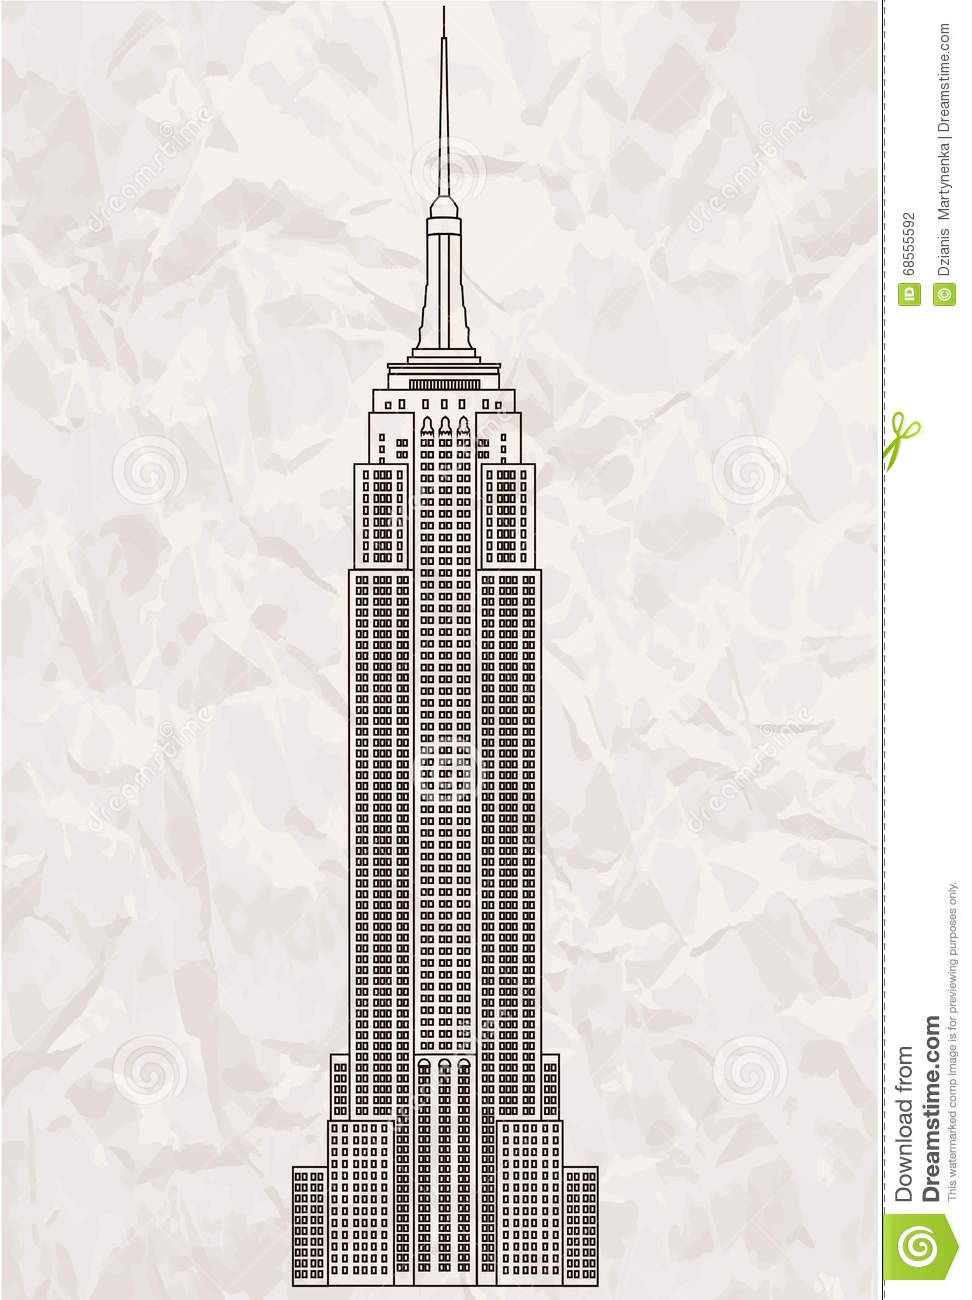 Empire State Building Free Vector